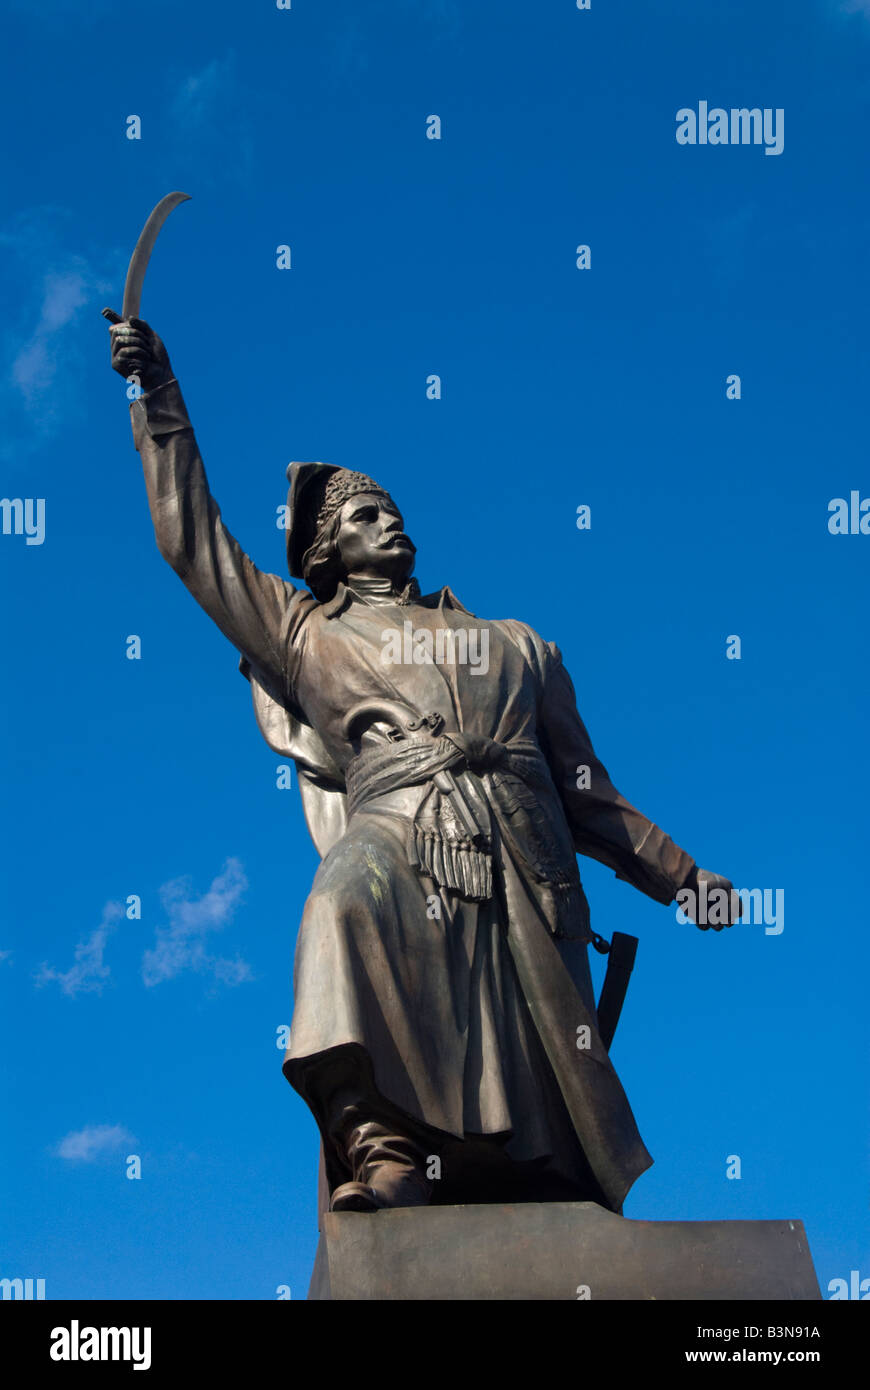 Statue of Jan Kilinski Warsaw - Stock Image